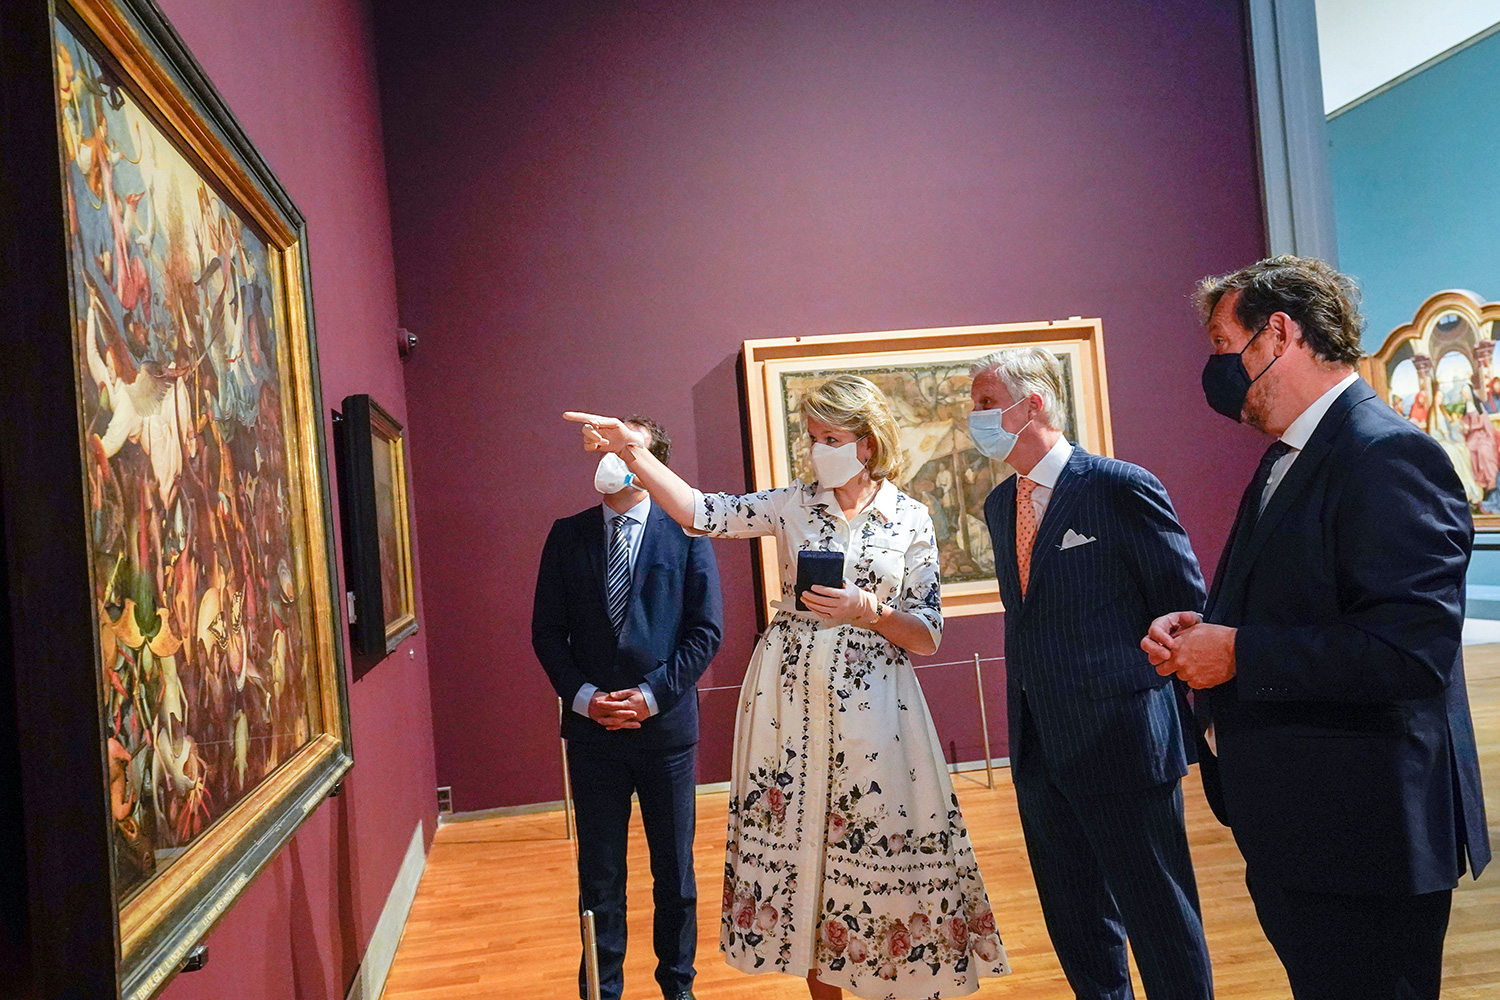 Belgium's King Philippe, second right, and Belgium's Queen Mathilde, second left, wear a face mask to prevent the spread of coronavirus, as they visit the Royal Museum of Fine Arts in Brussels